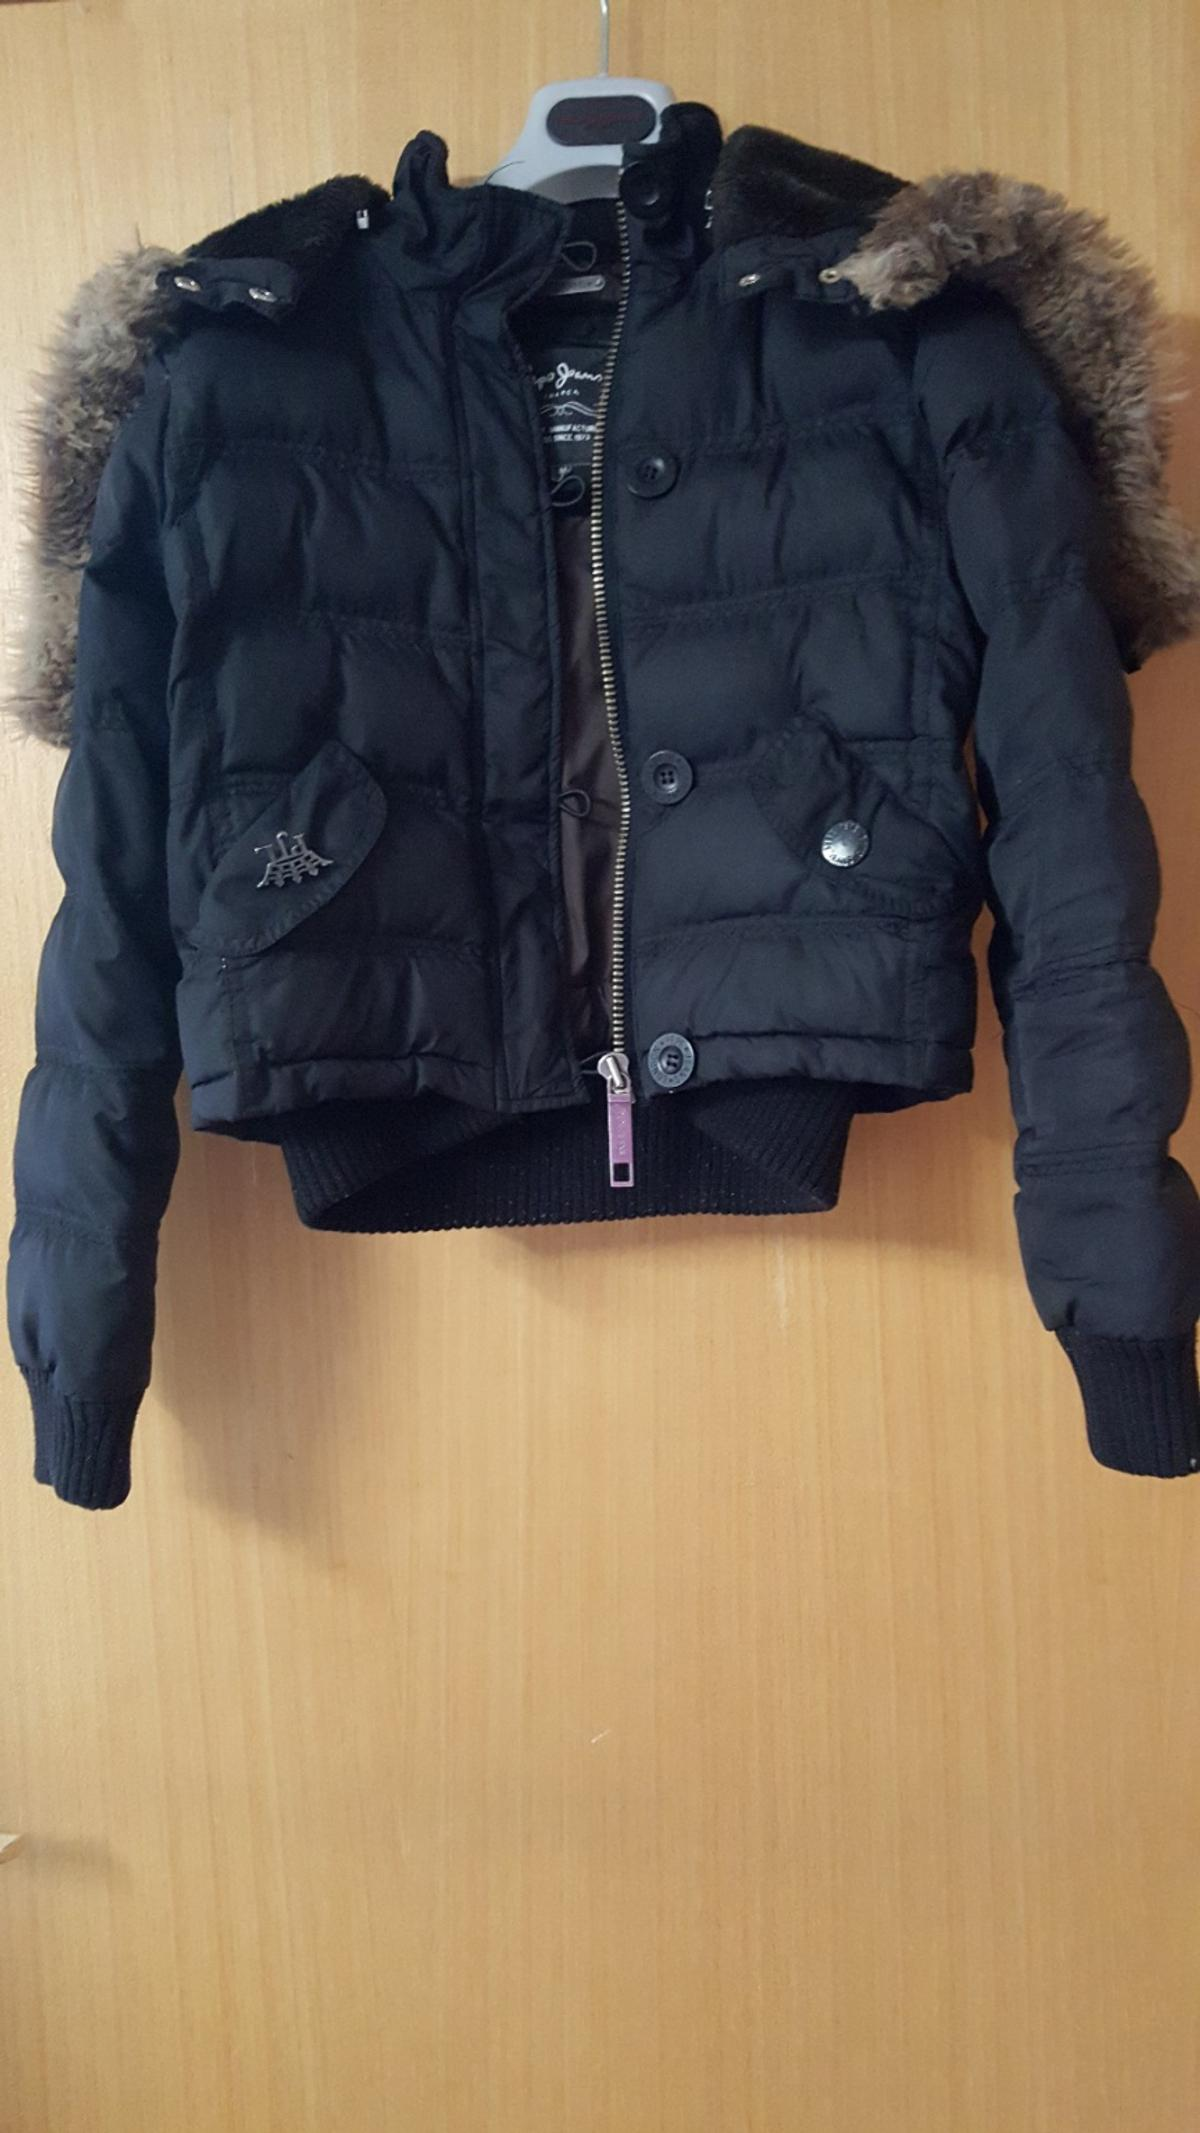 new concept 72a05 ddf0c Pepe Jeans damen jacke in 9436 Balgach for €25.00 for sale ...